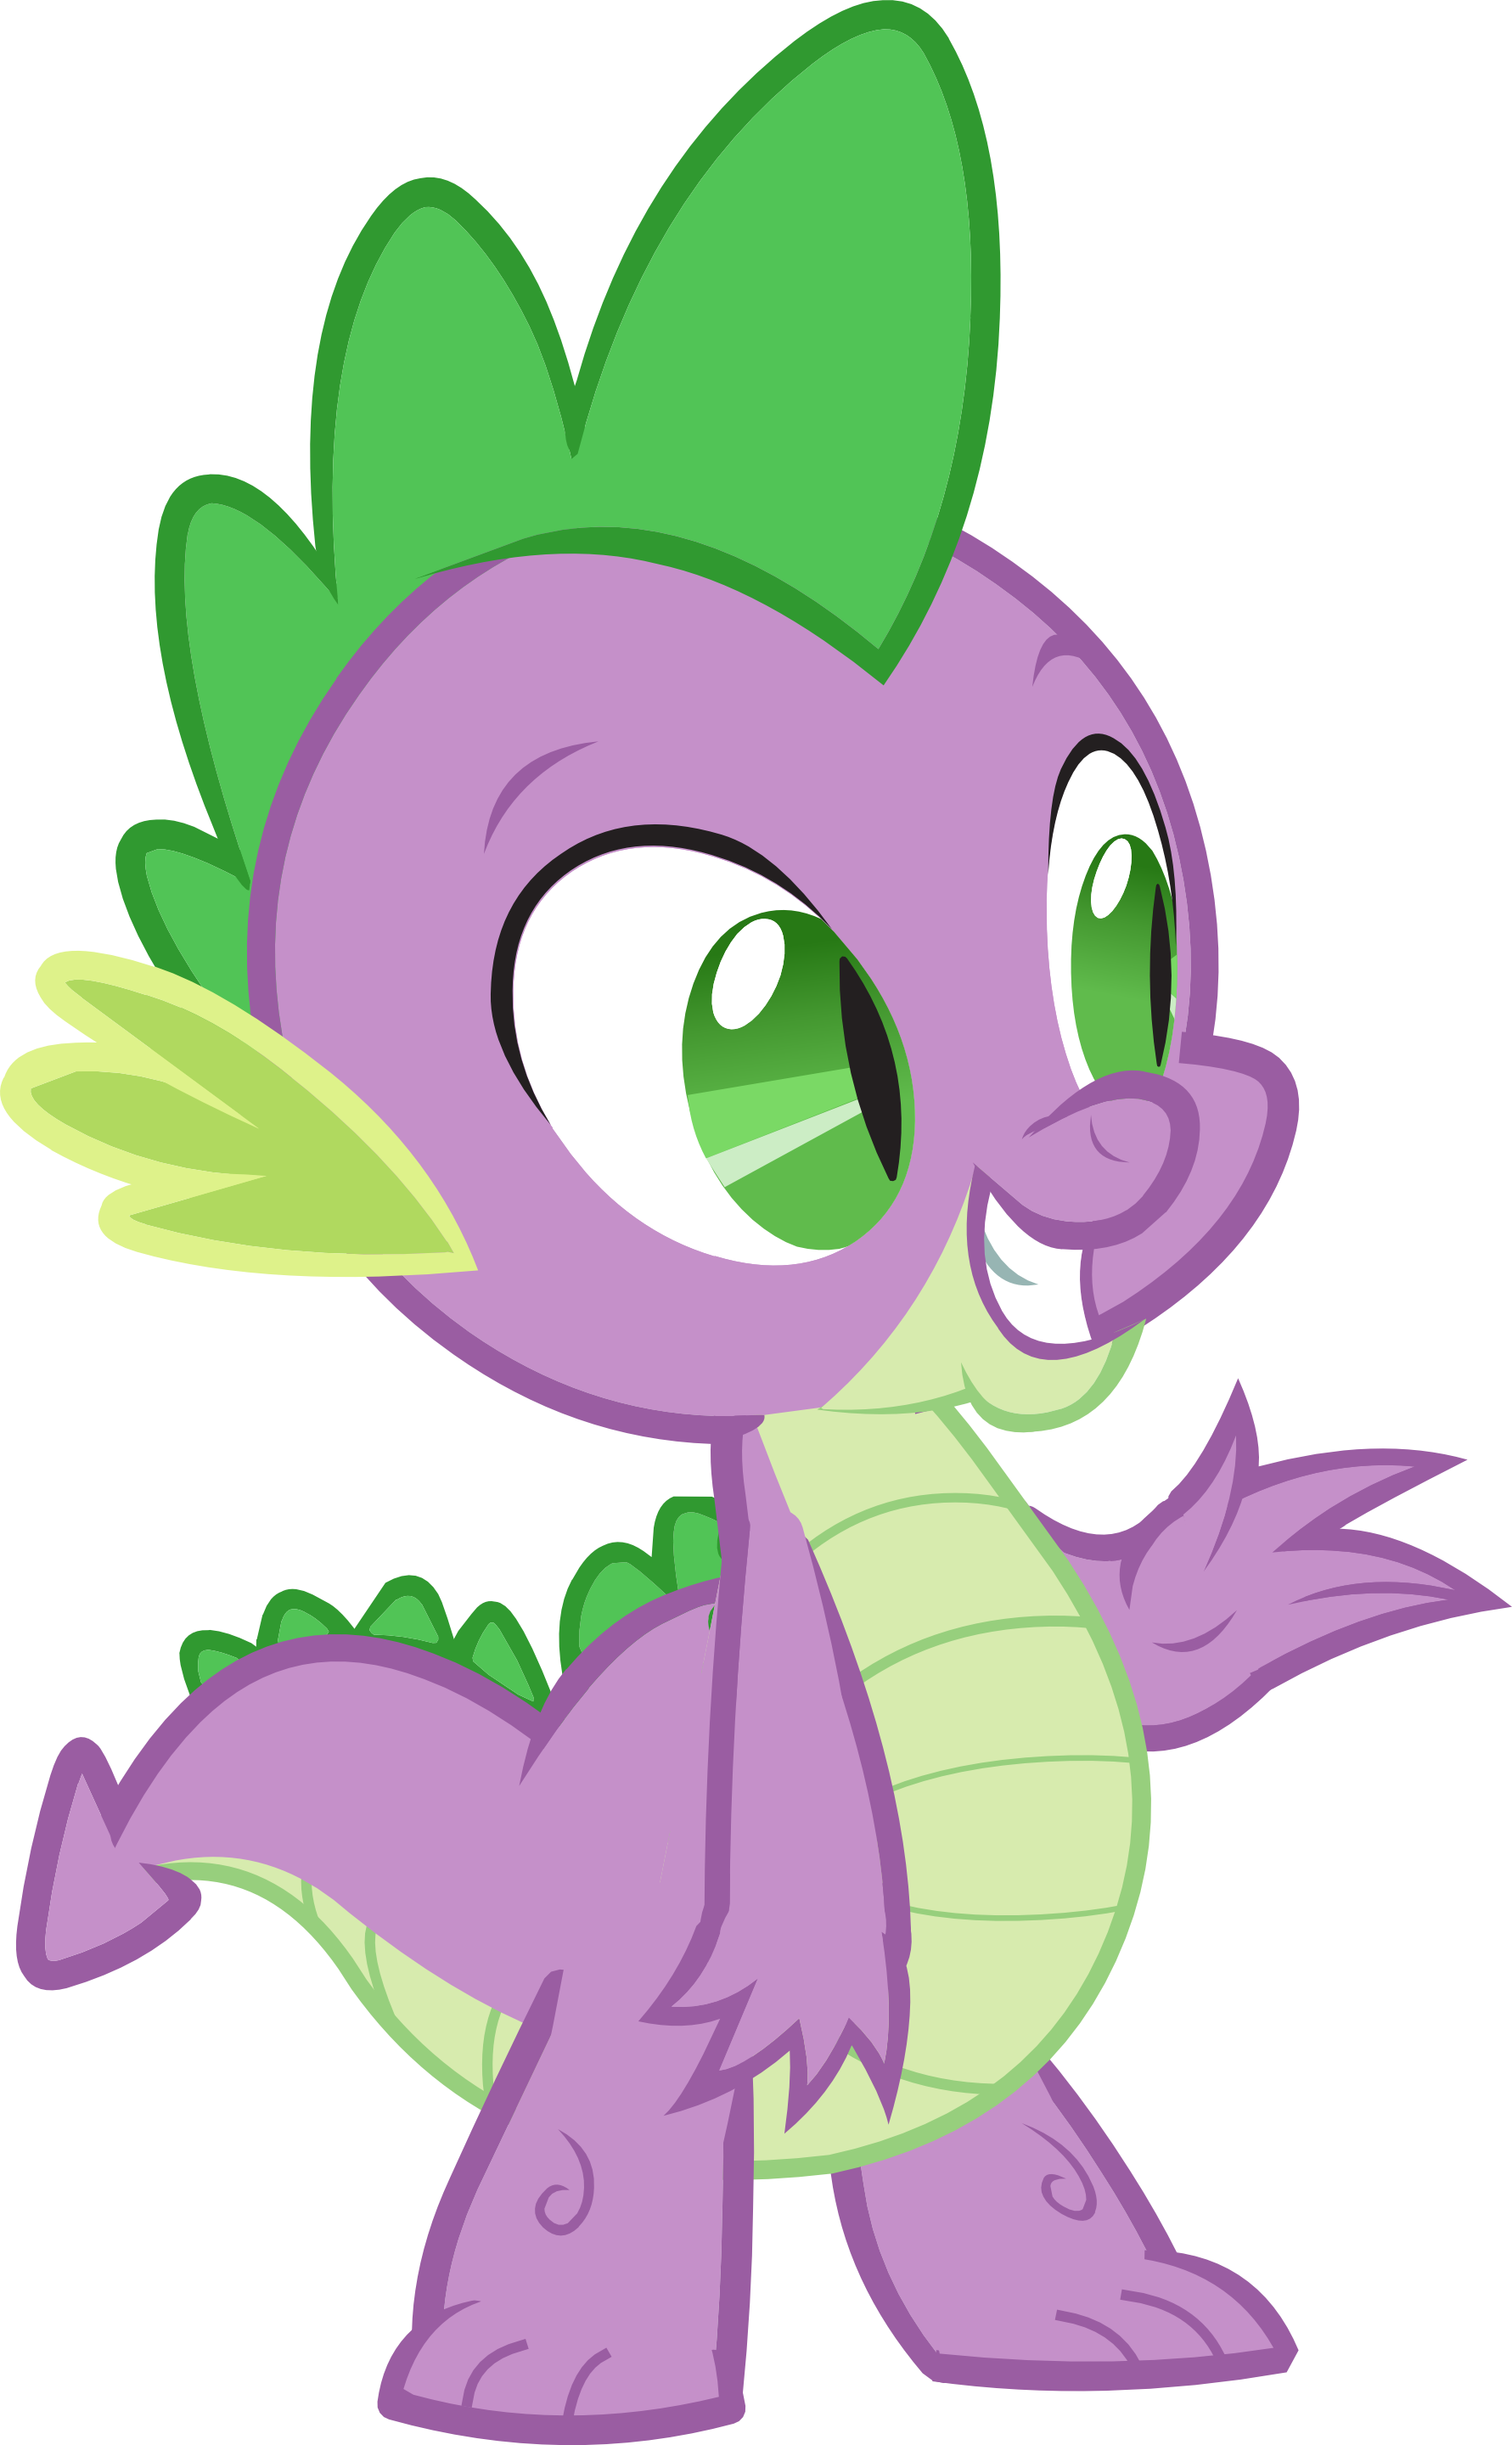 Spike (My Little Pony) - Heroes Wiki